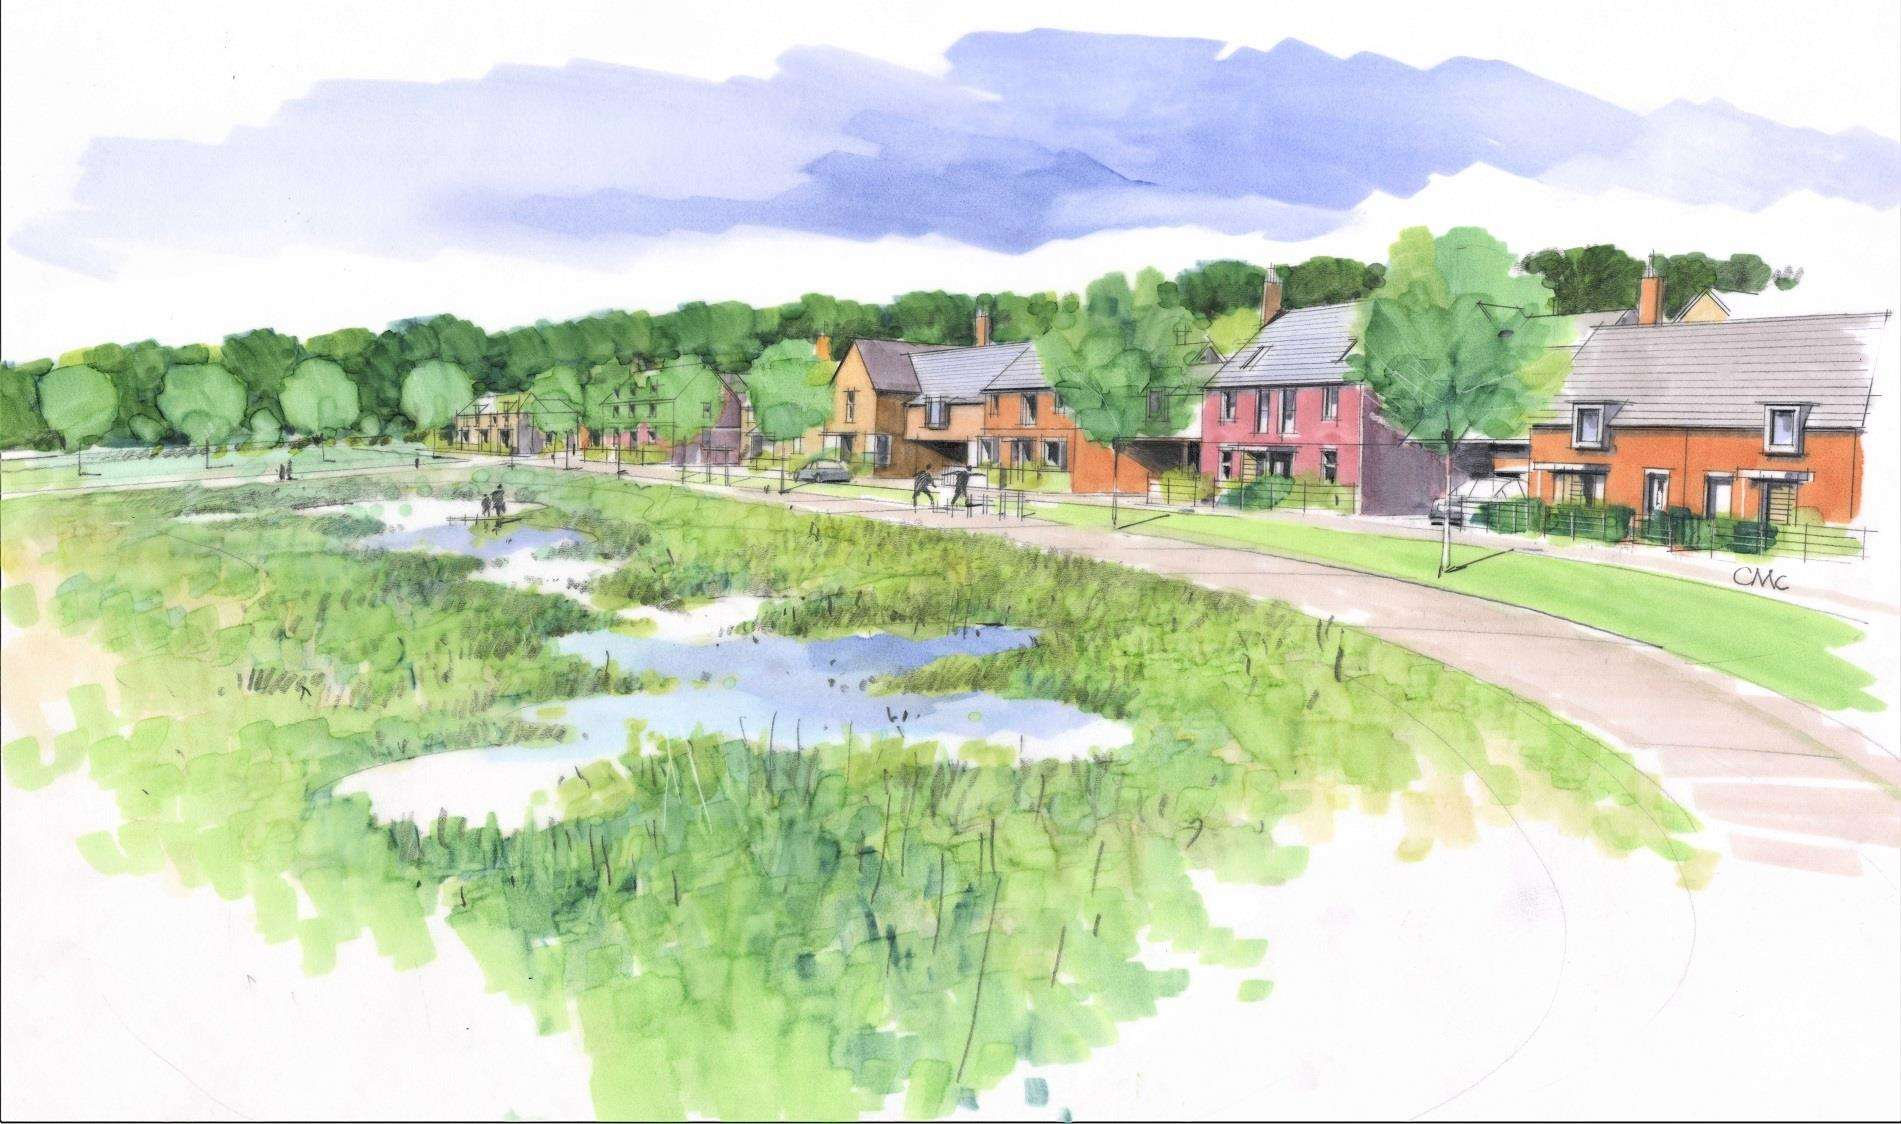 Artist's impression of the proposed Weavers Green housing development in Boxford. Image supplied by Catesby Estates. (6869743)